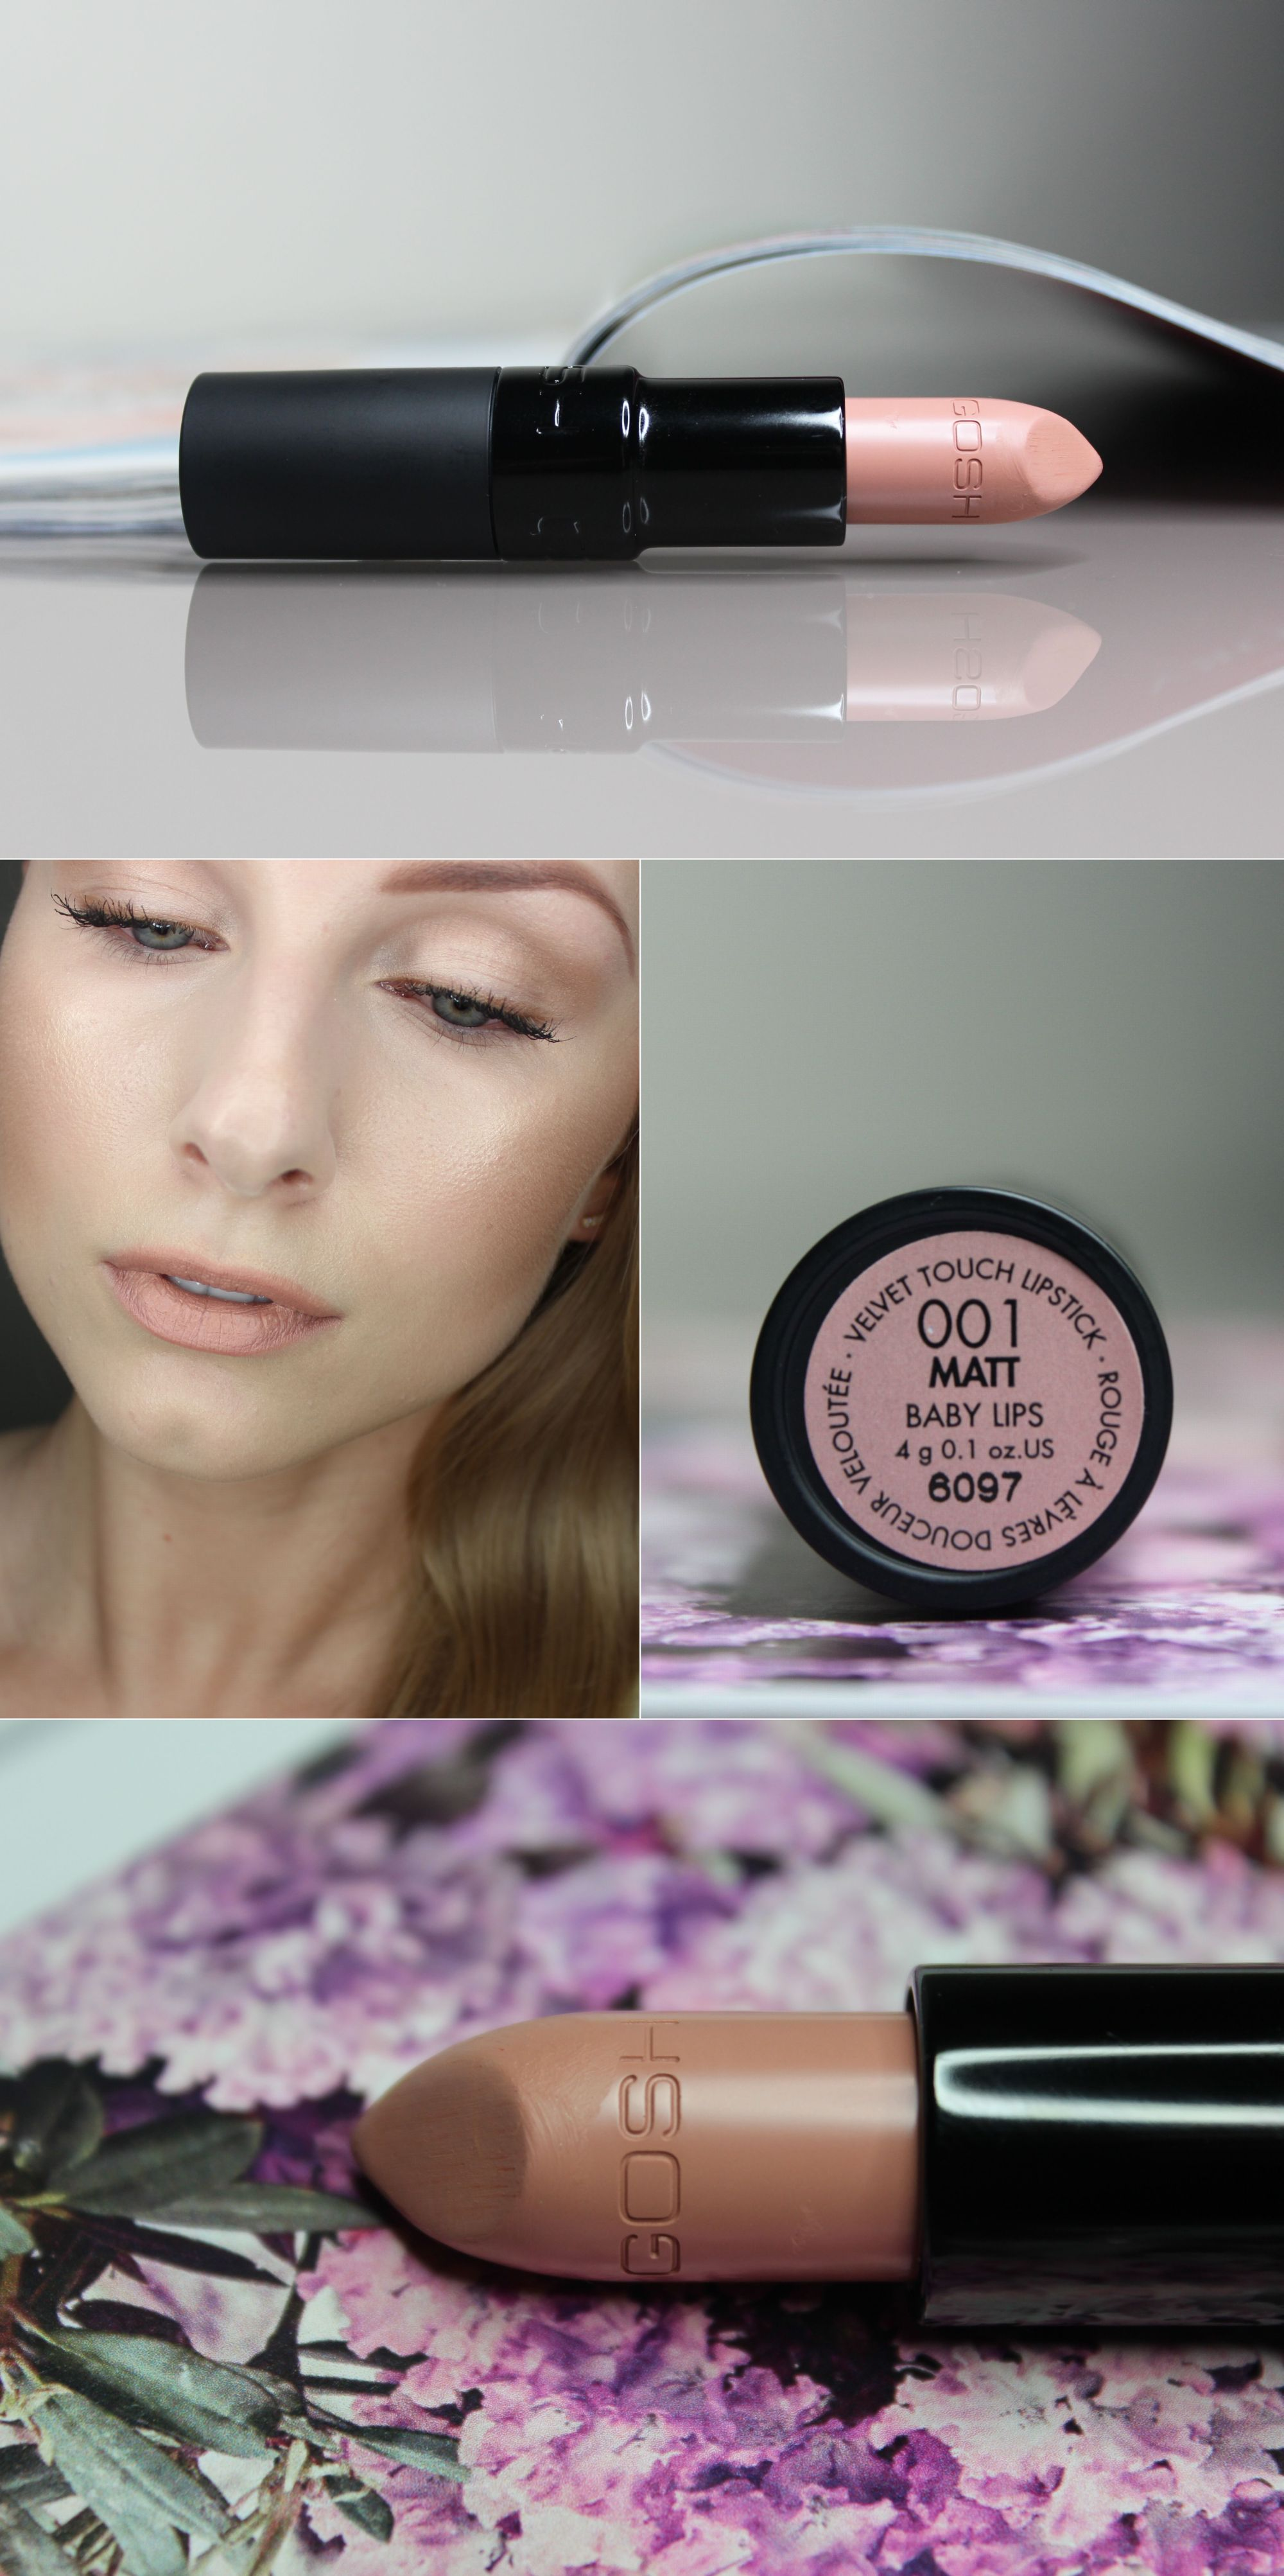 #CITY_BREAK_GOODIES GOSH Copenhagen Total Make-up 7